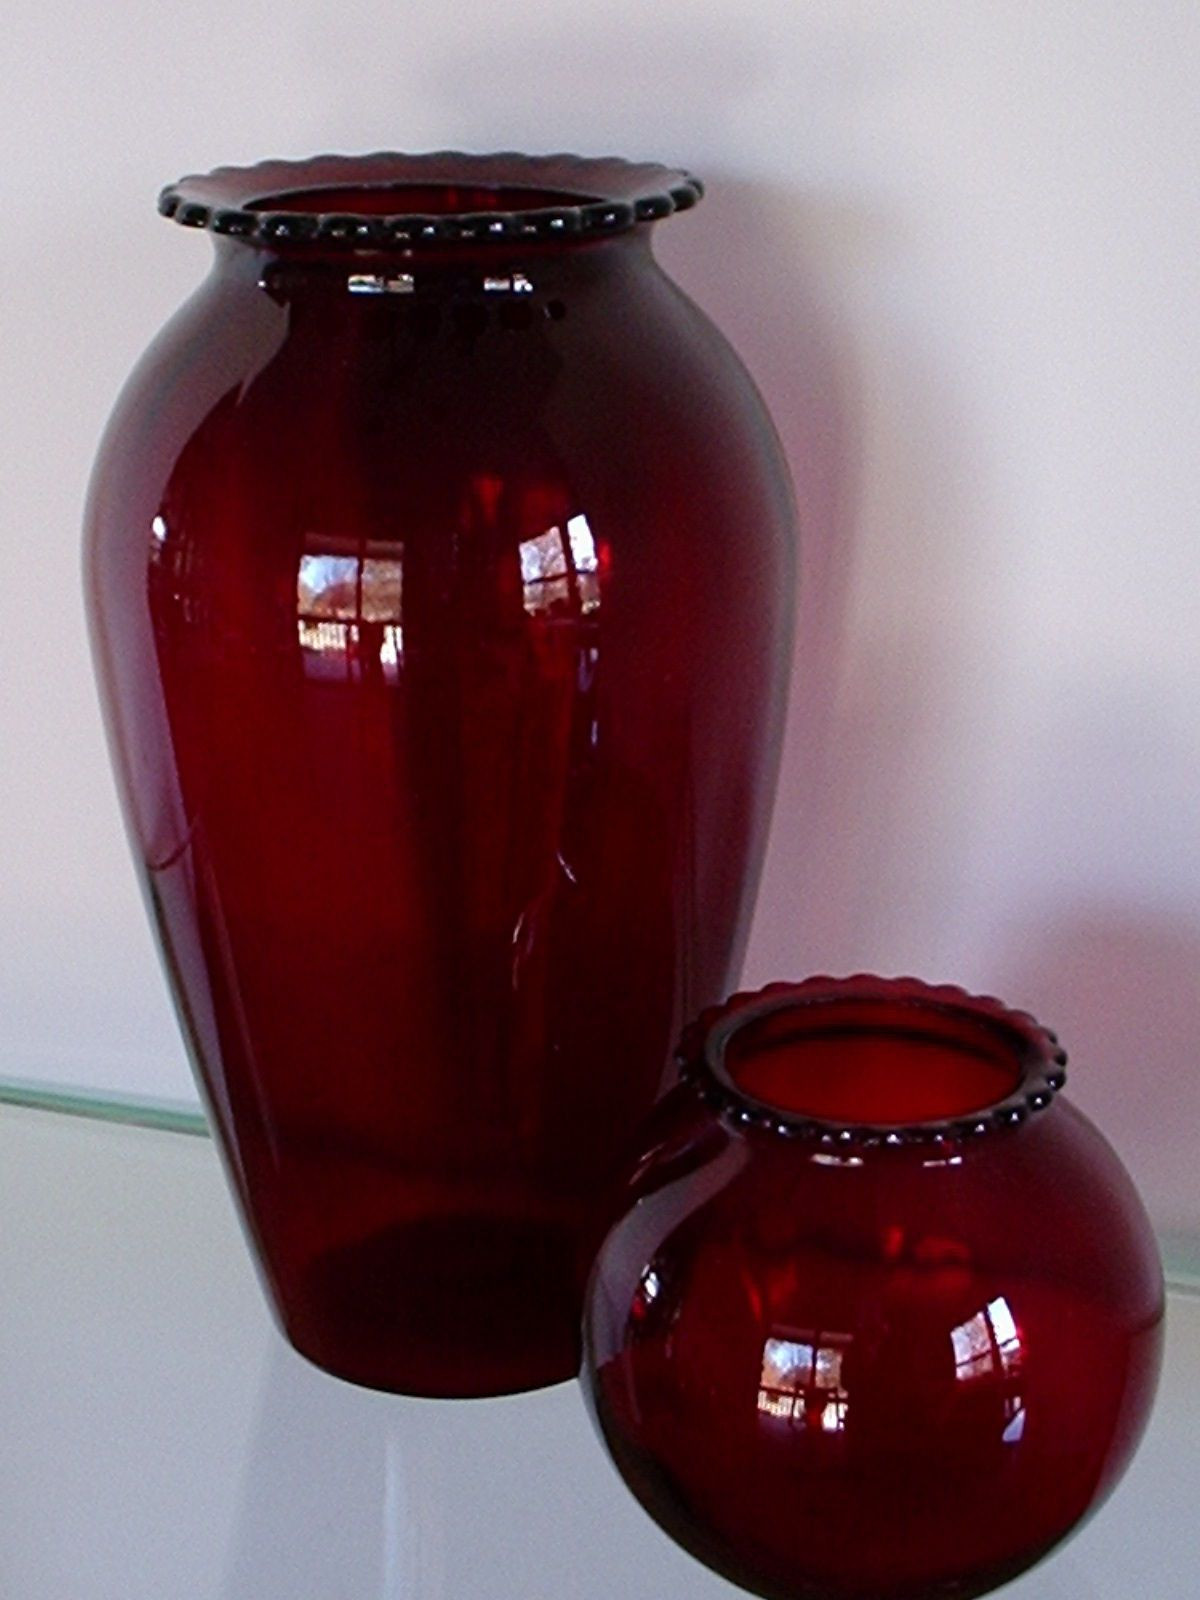 ruby red vase of anchor royal ruby glass shakers vintage salt and pepper pertaining to 2 vintage depression glass anchor hocking royal ruby red vases hoover ebay